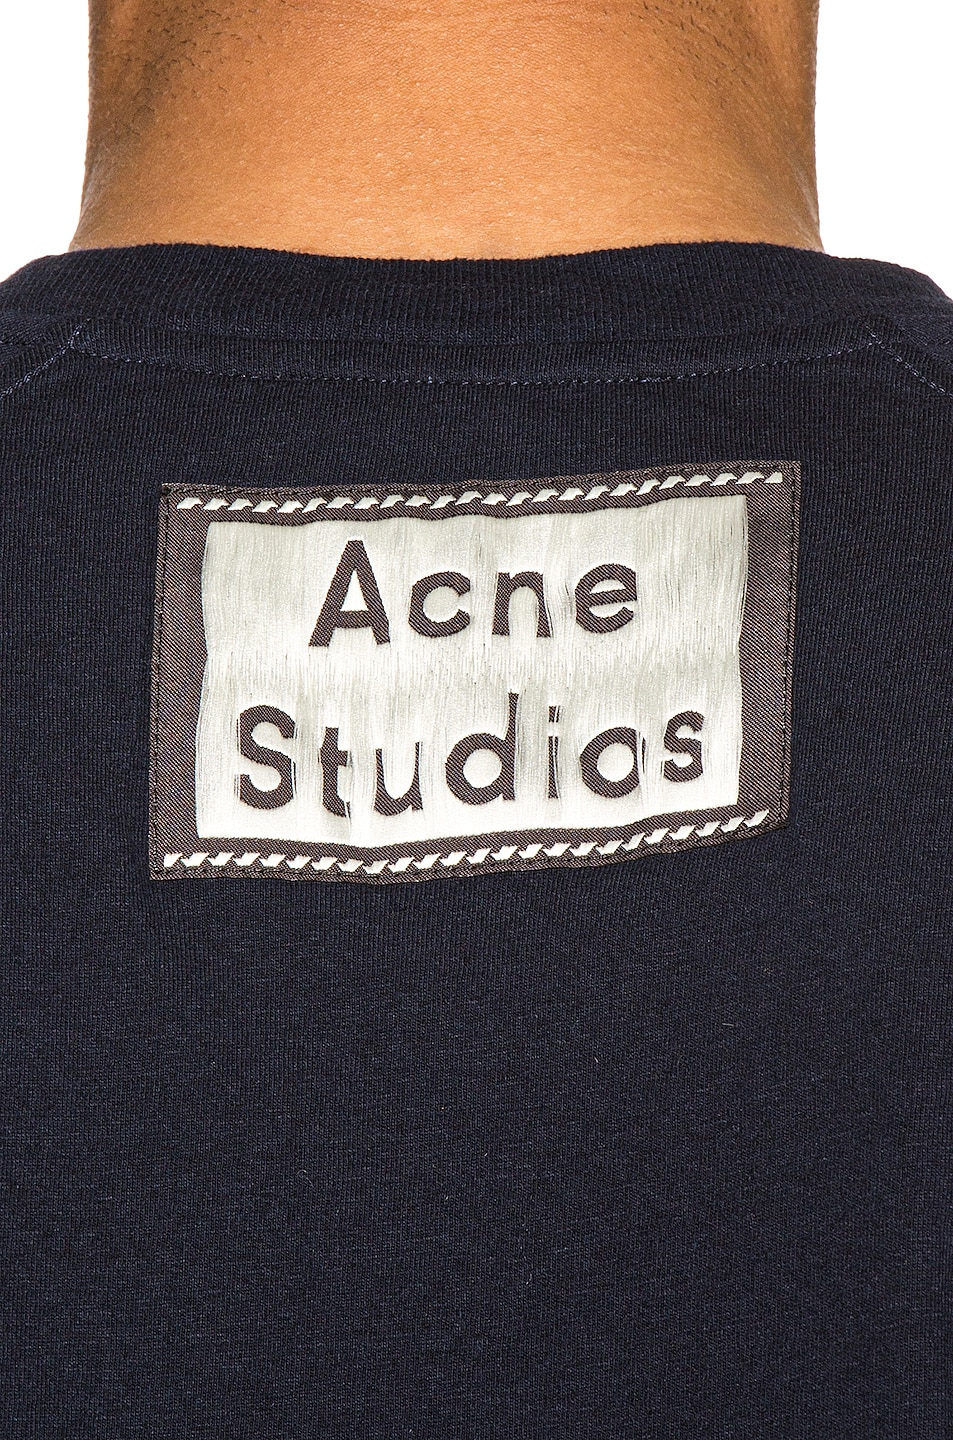 Image 6 of Acne Studios Graphic Tee in Navy Blue